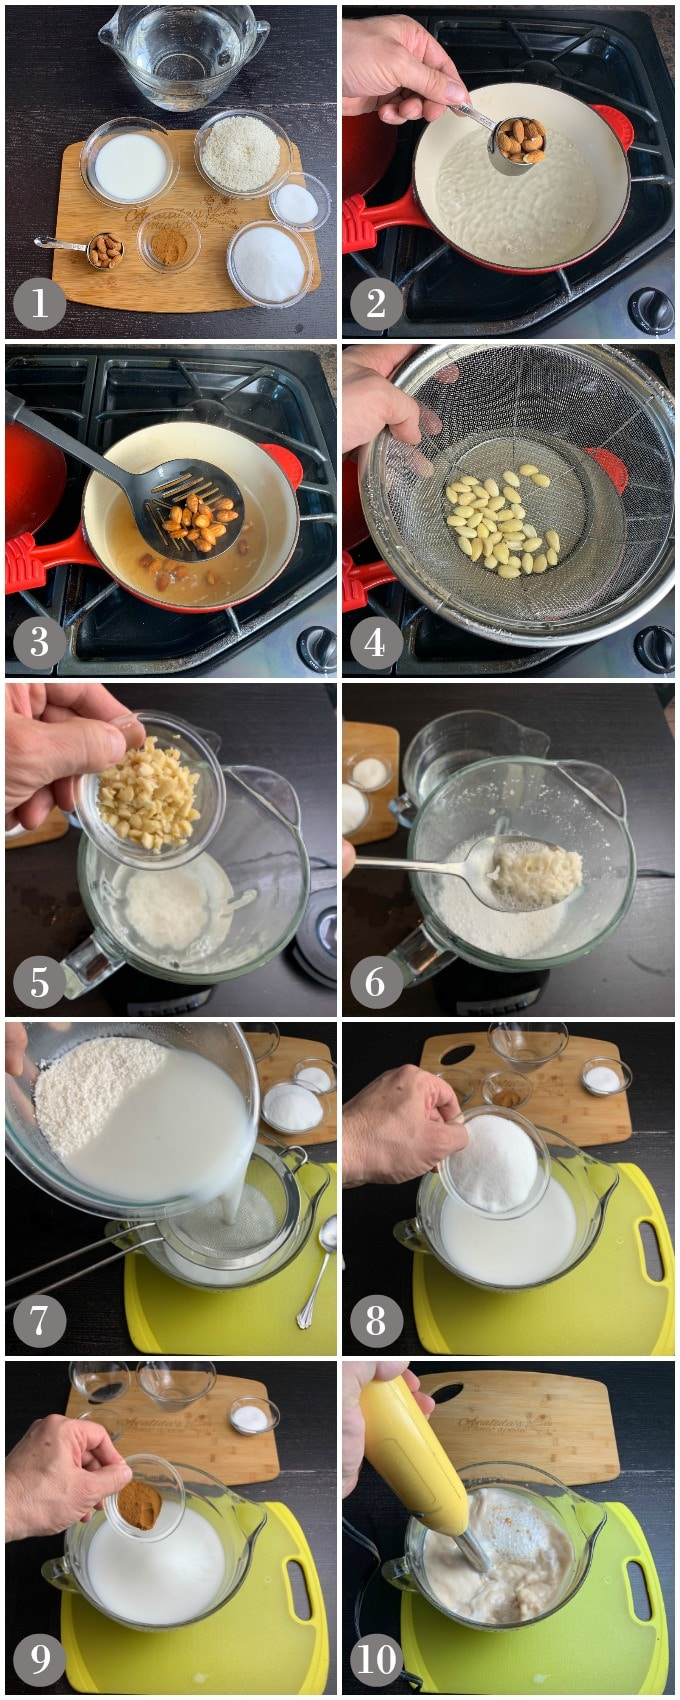 A collage of photos showing blanching almonds in a pan and then making Spanish horchata from rice, cinnamon, sugar and milk.